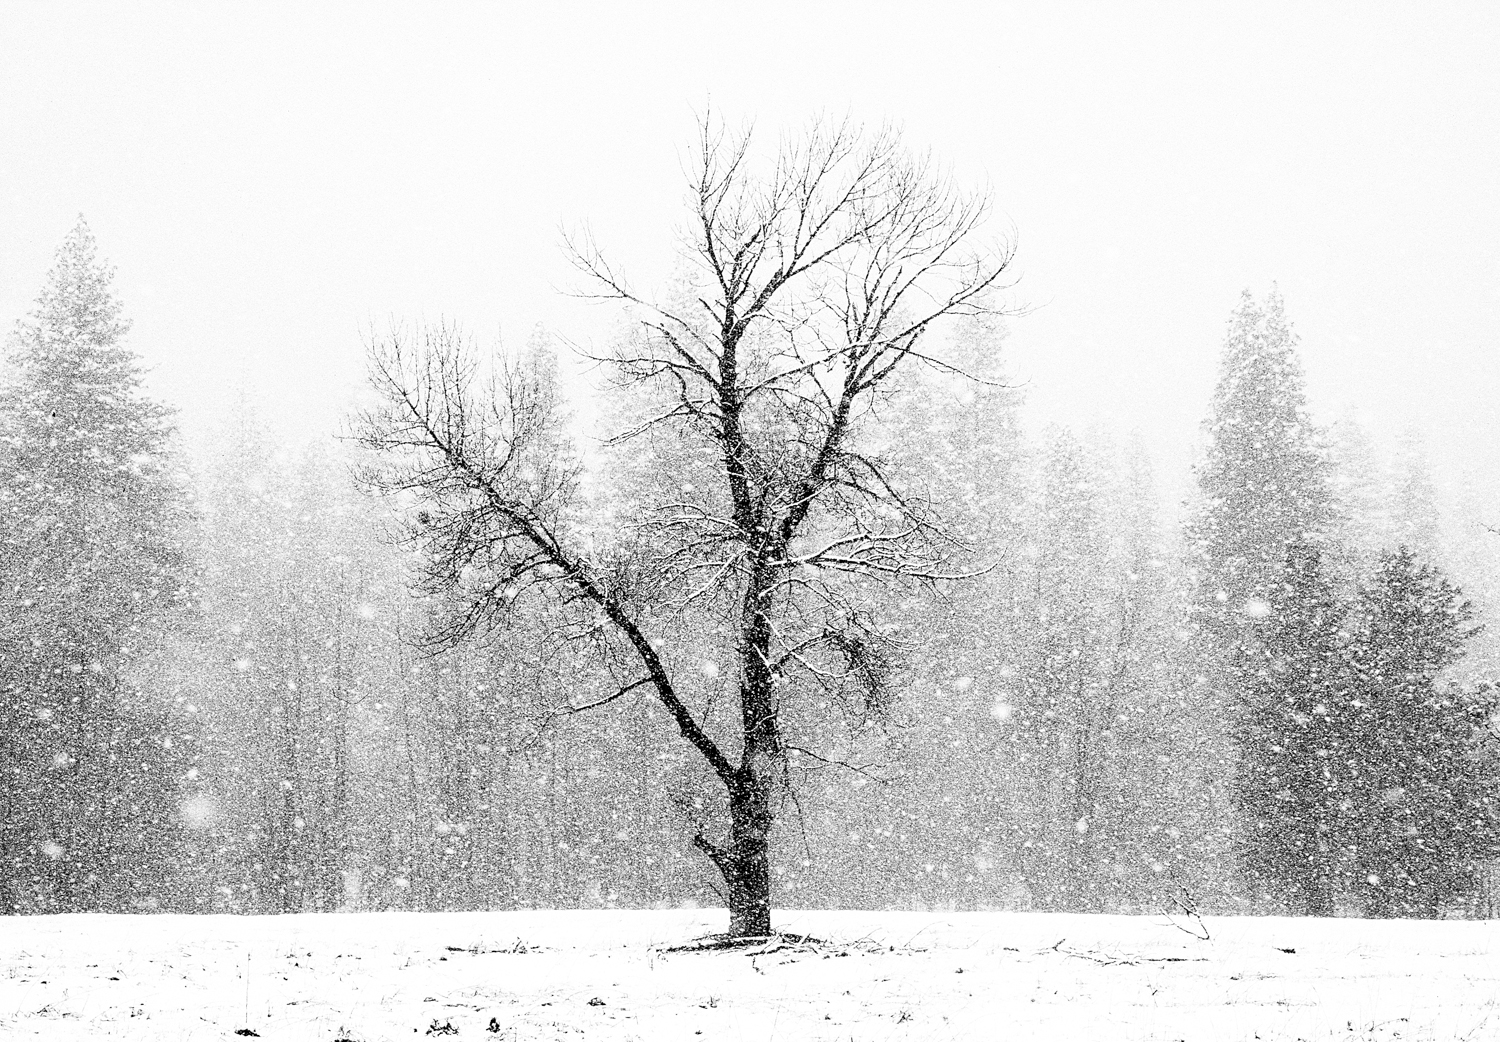 (S)tree in snow IS13.5x9.5s.jpg